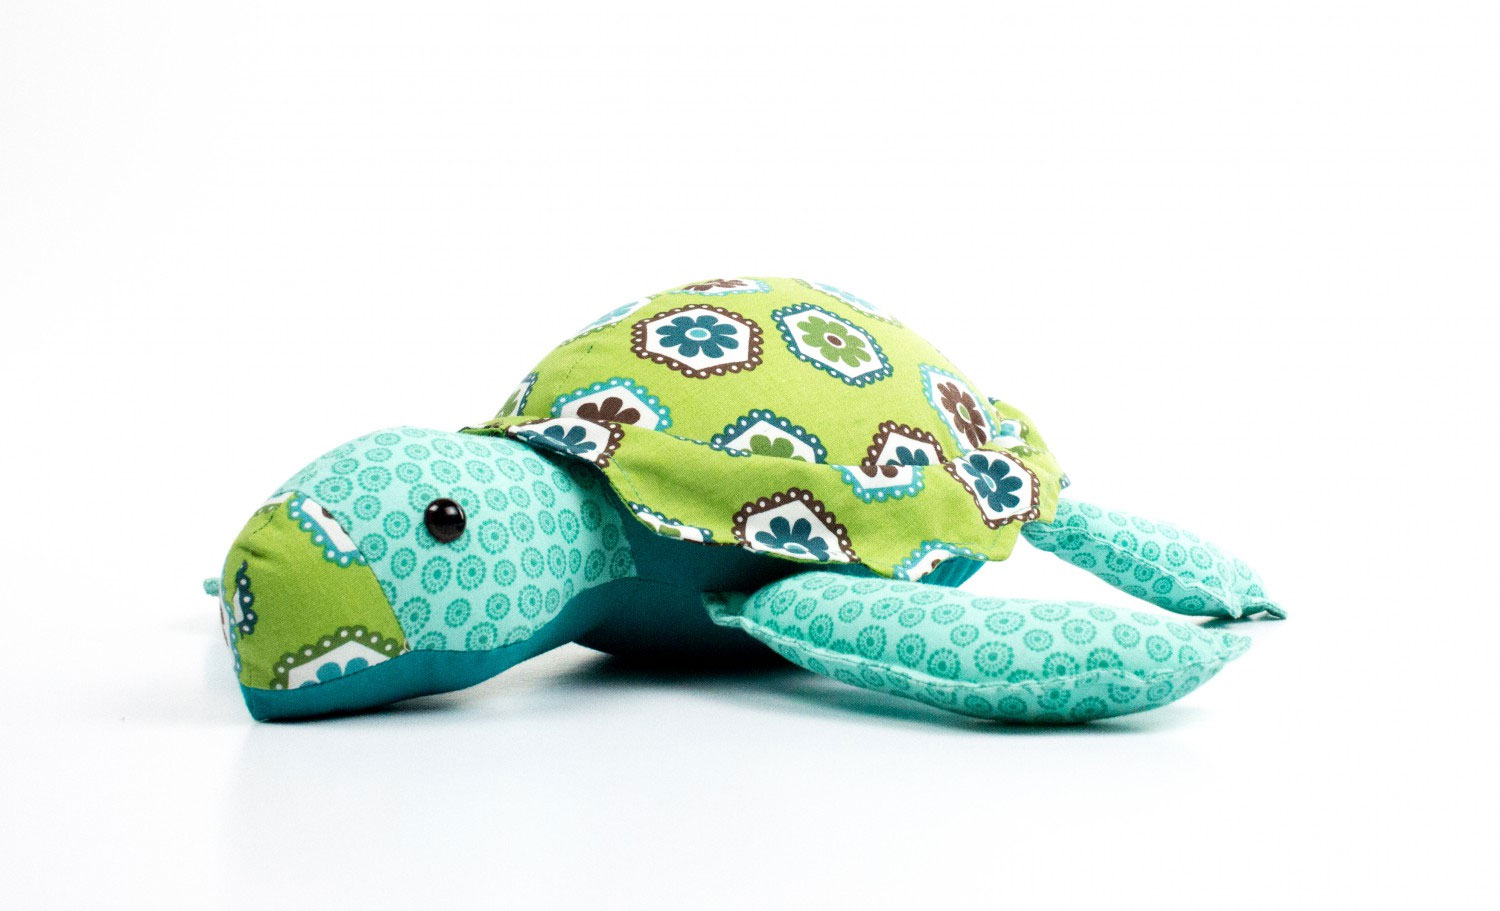 Stue-the-Sea-Turtle-sewing-pattern-Funky-Friends-Factory-2